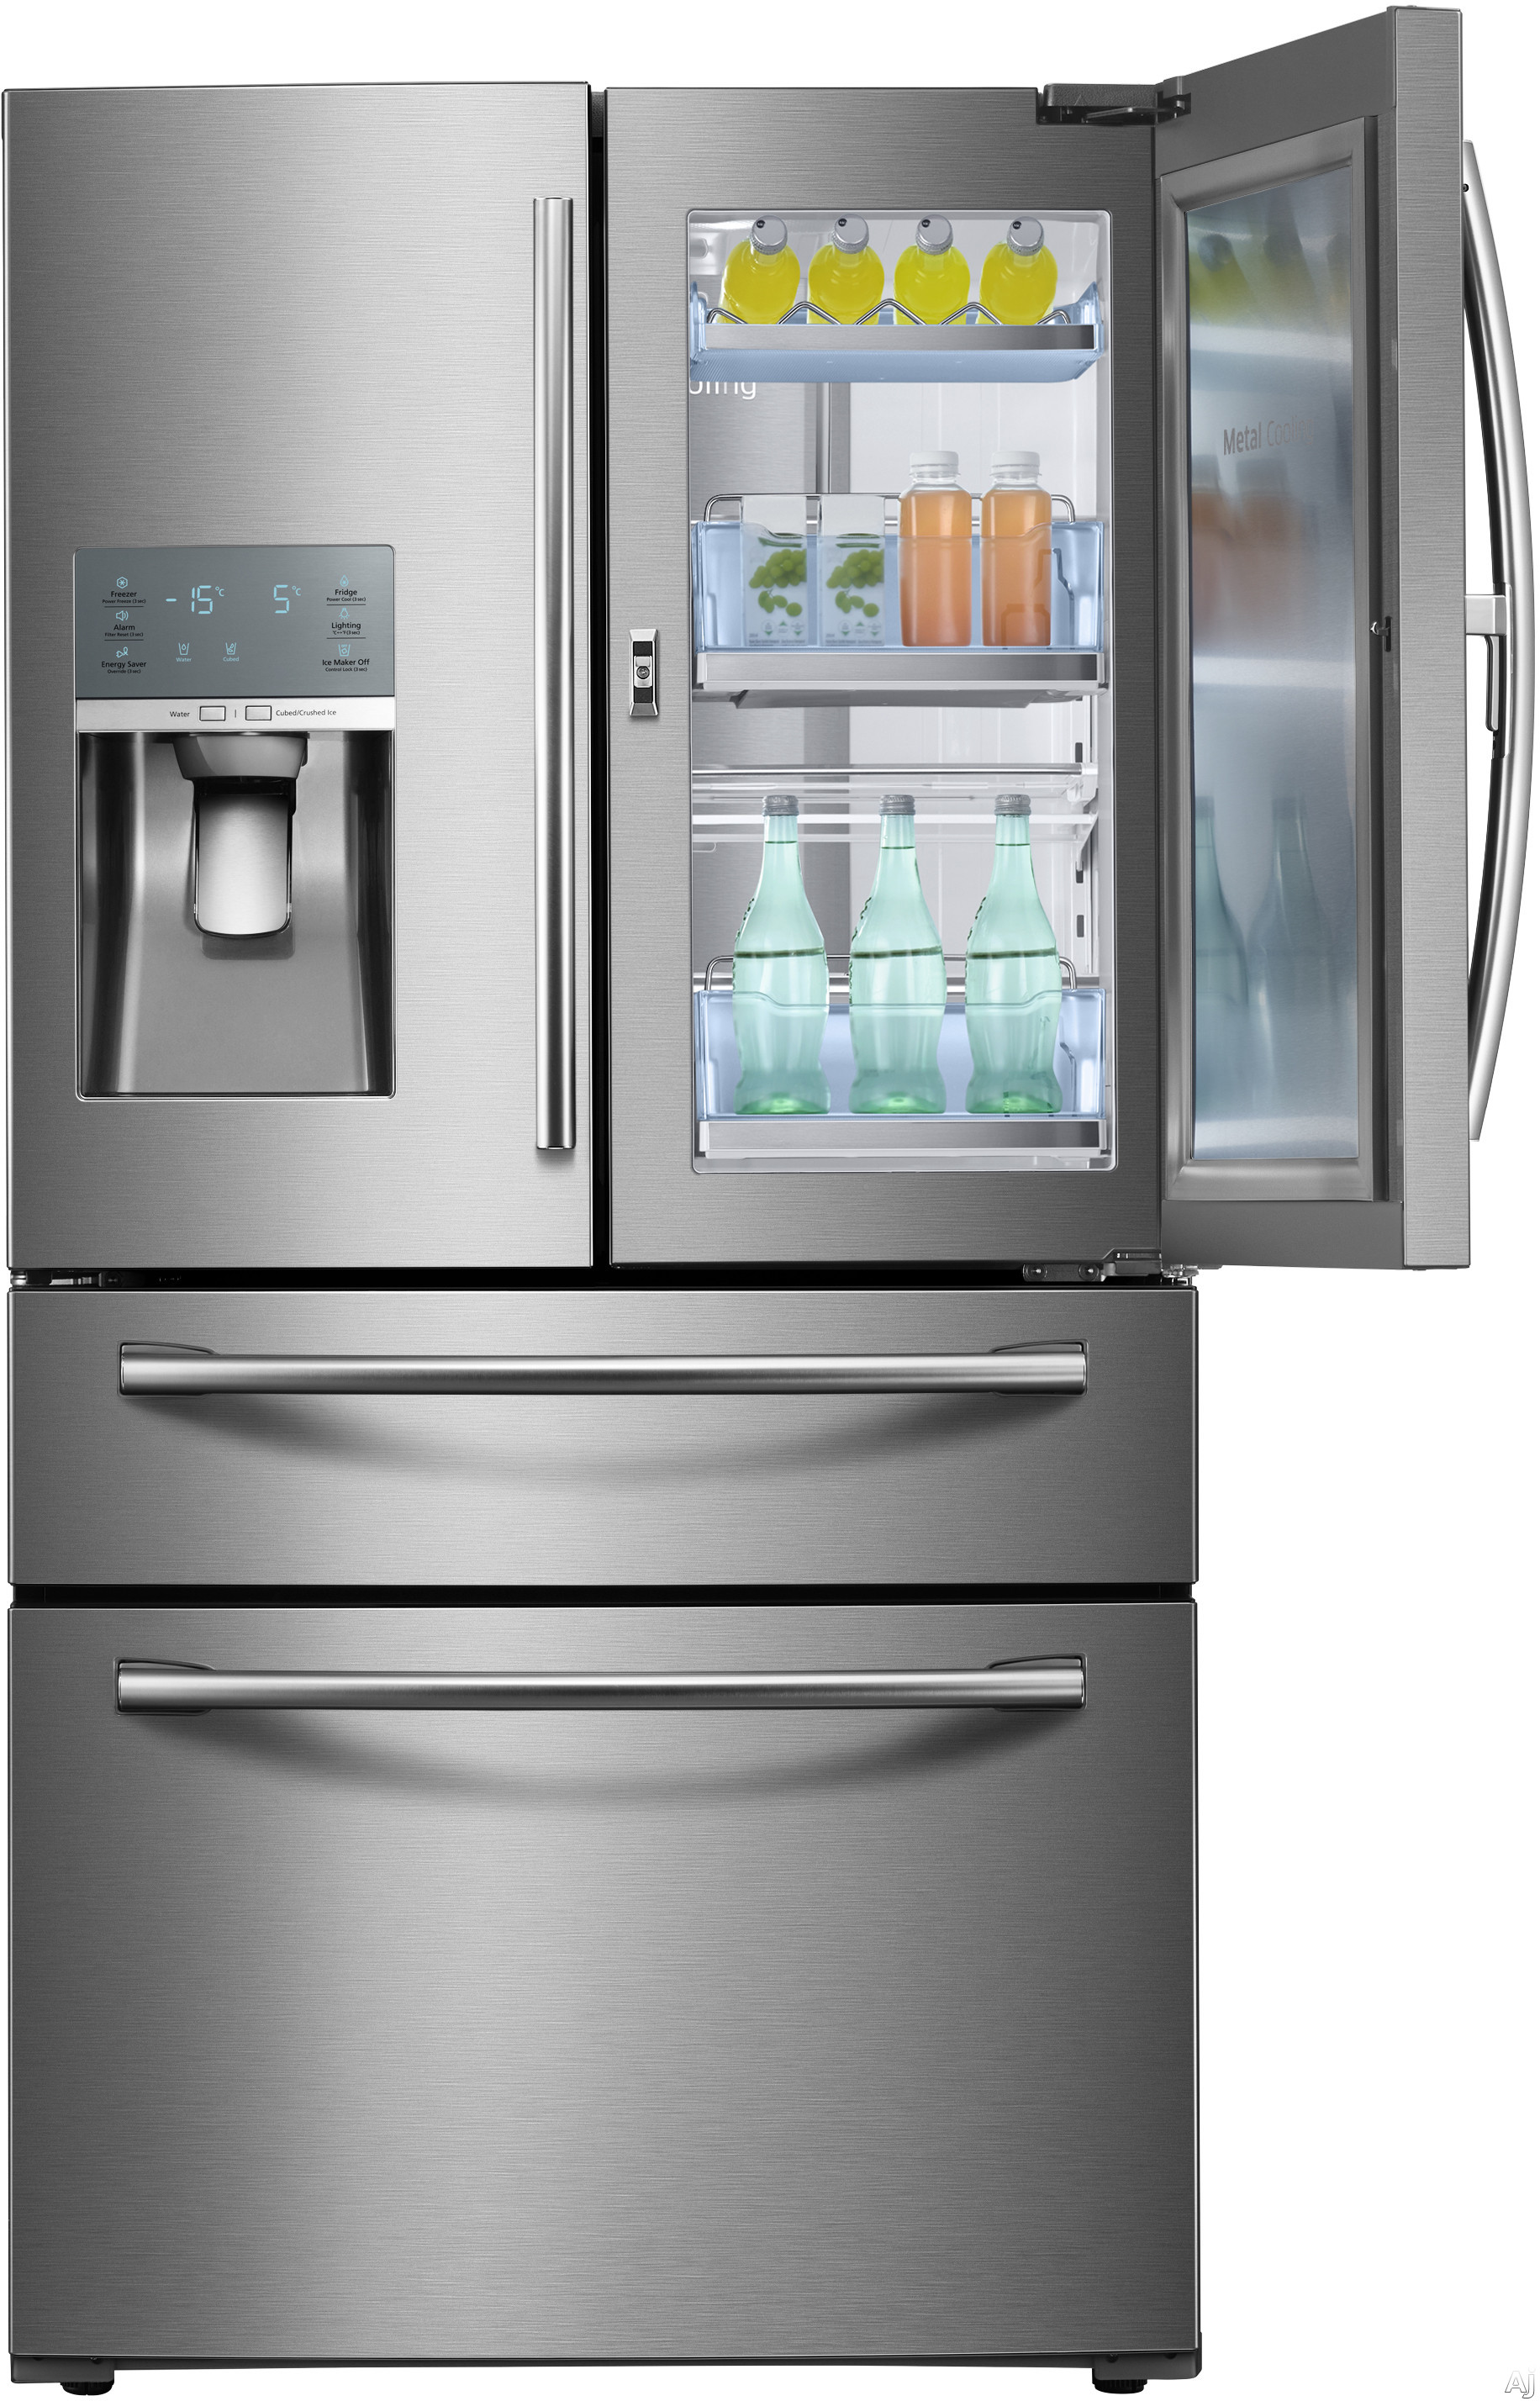 Samsung Rf28jbedbsr 28 Cu Ft French Door Refrigerator